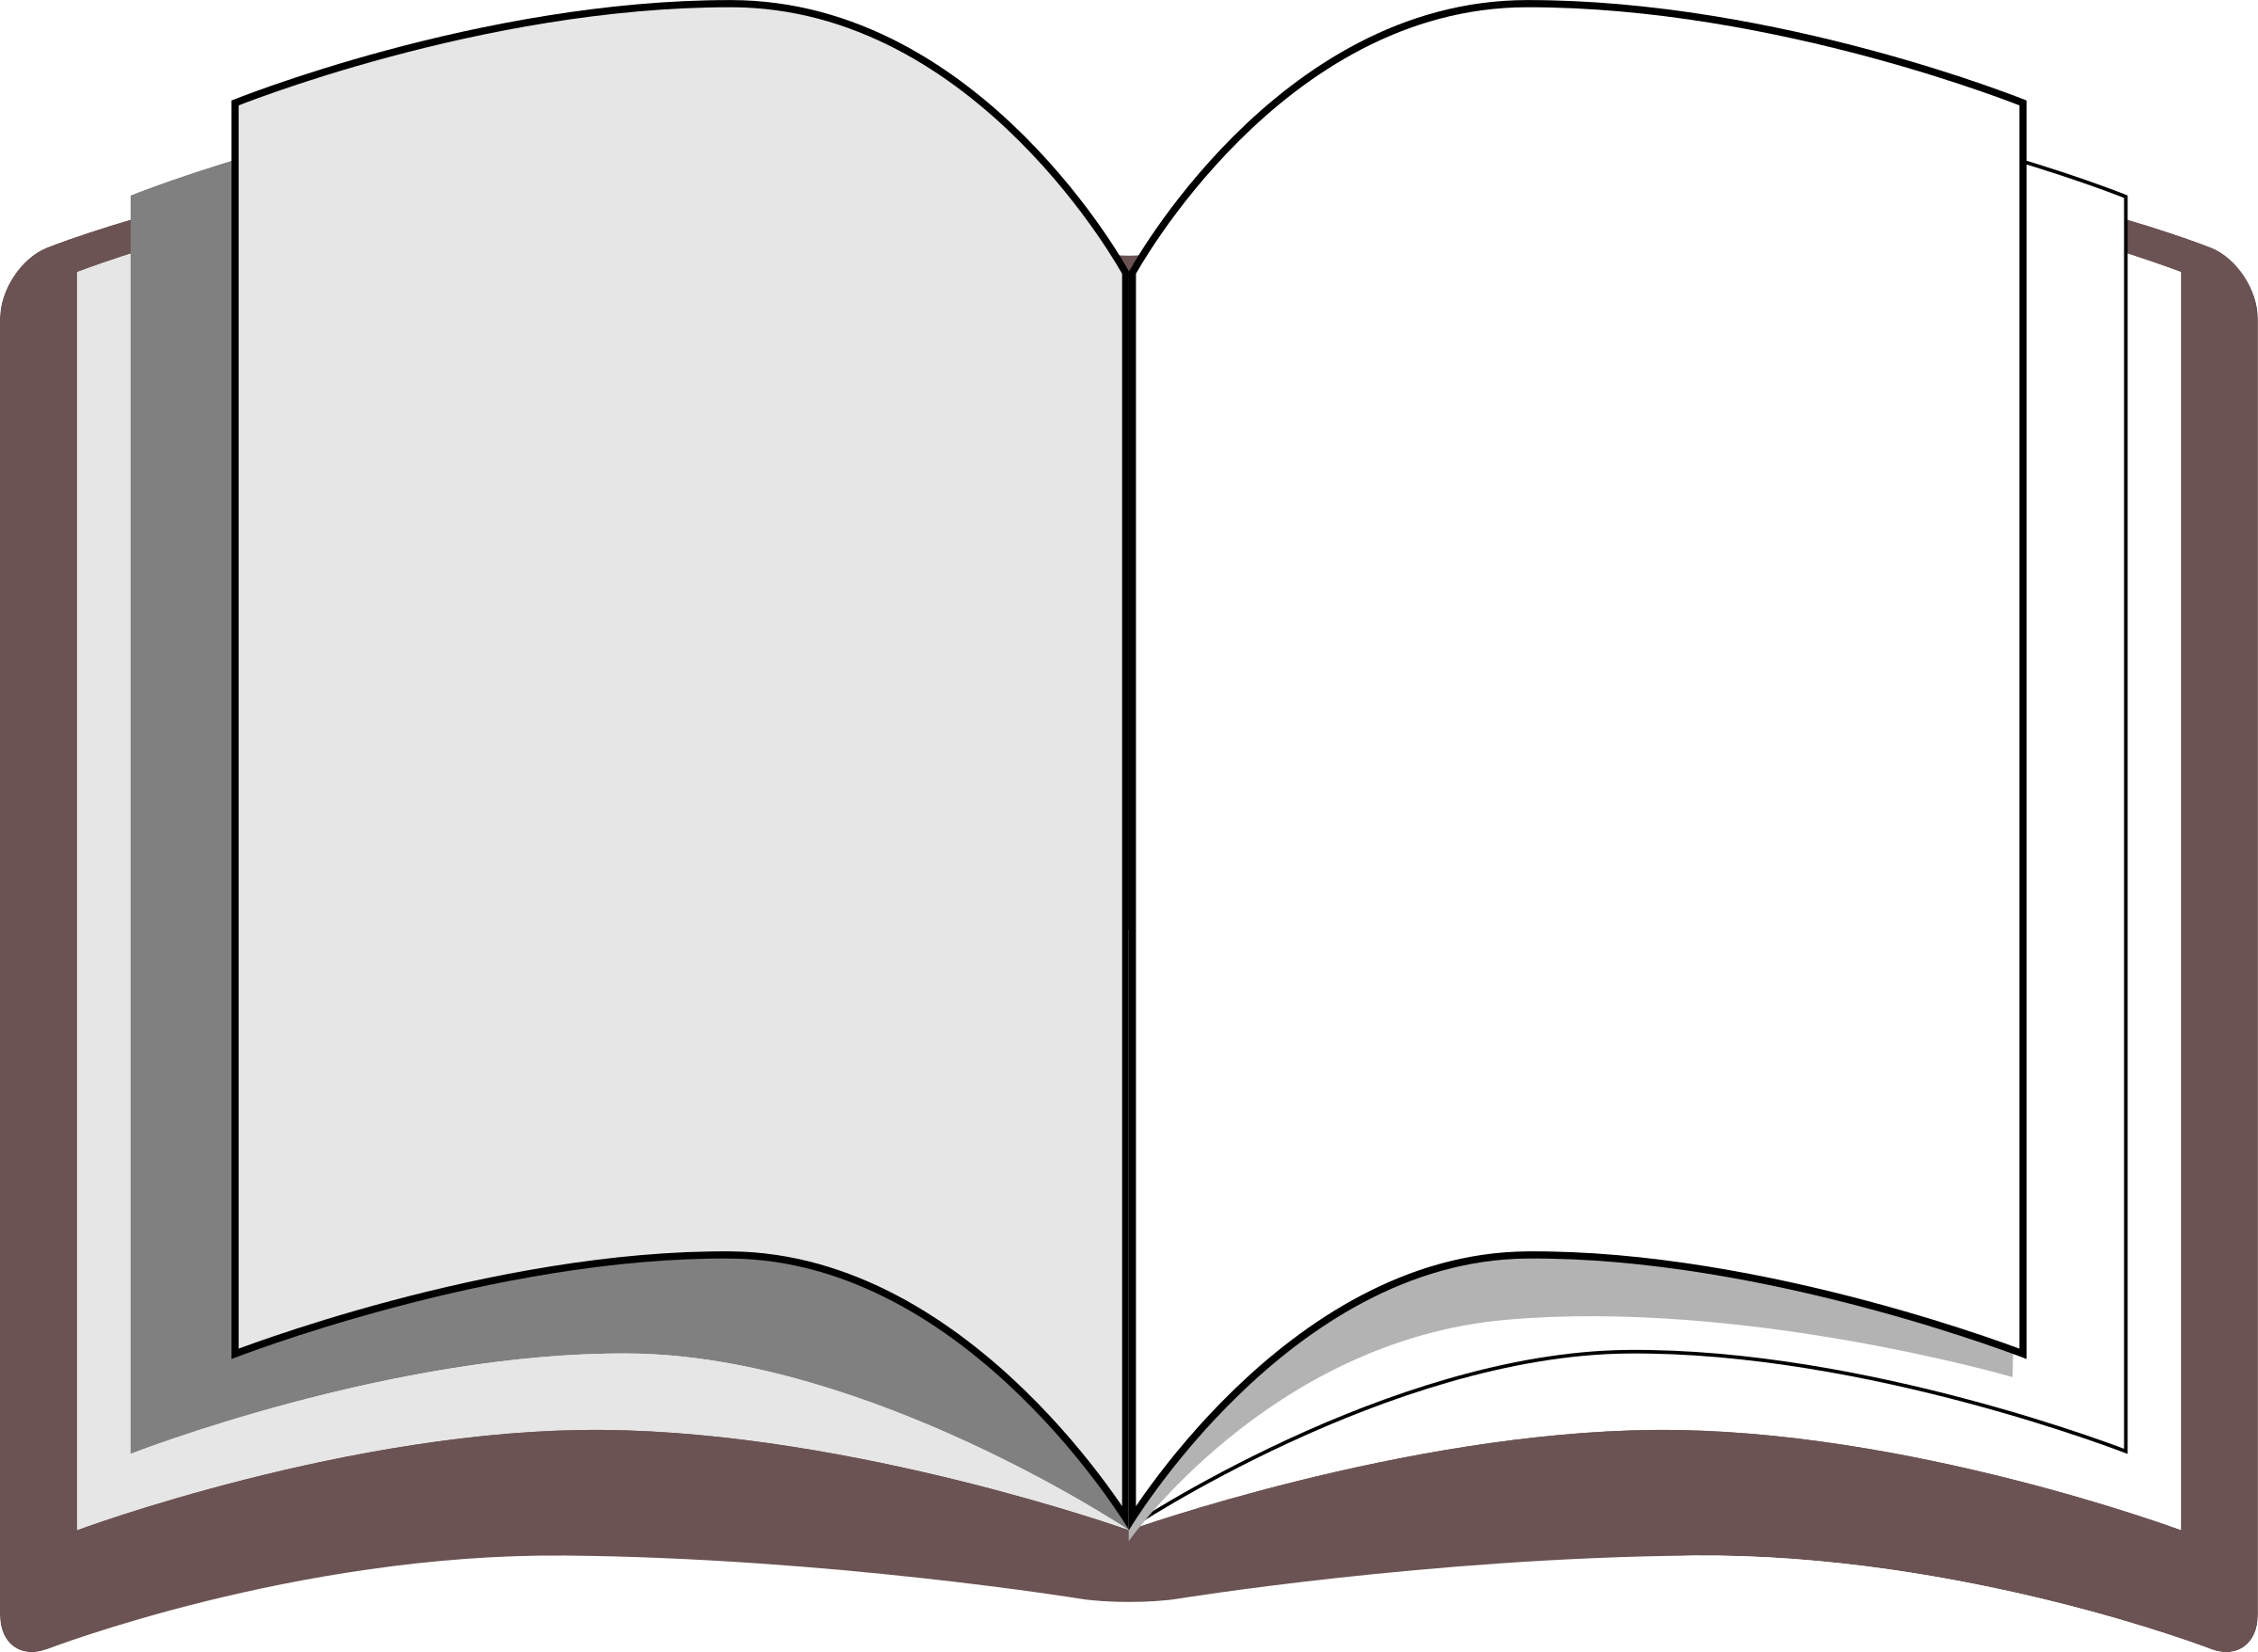 Clipart of an open book picture download Clipart - open book picture download